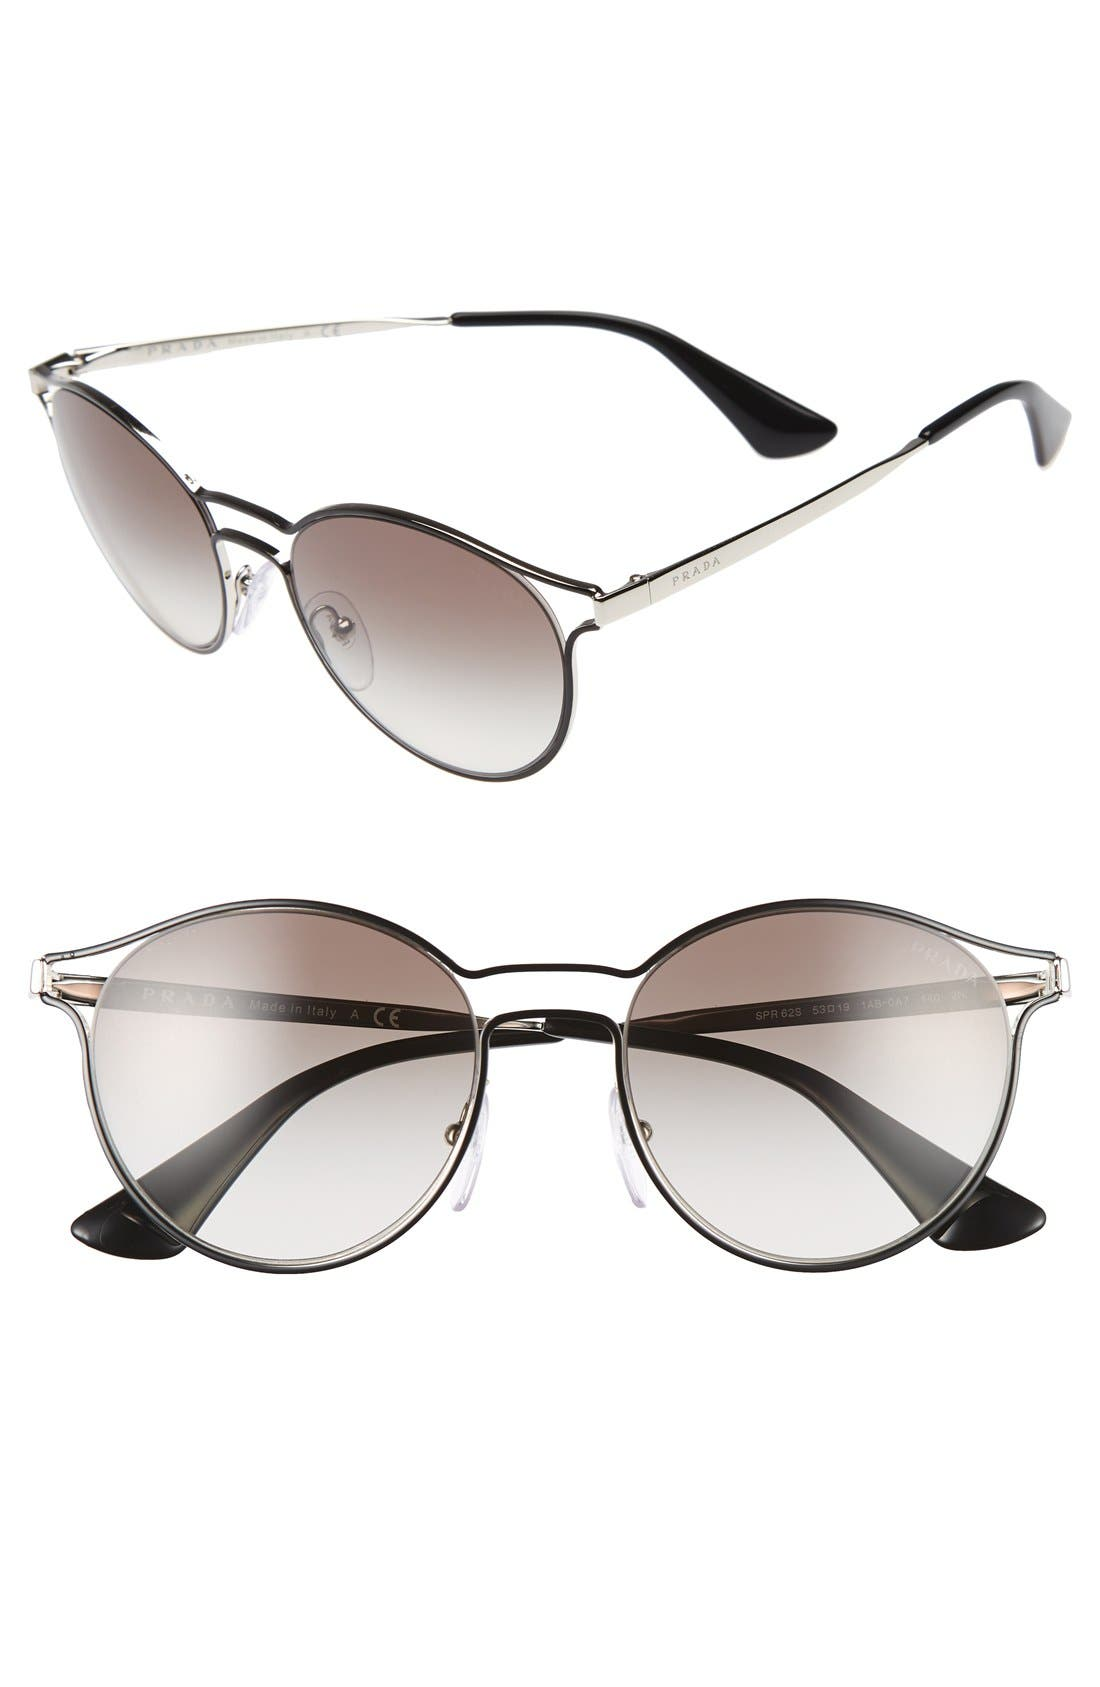 Prada 53mm Rectangular Cat Eye Sunglasses